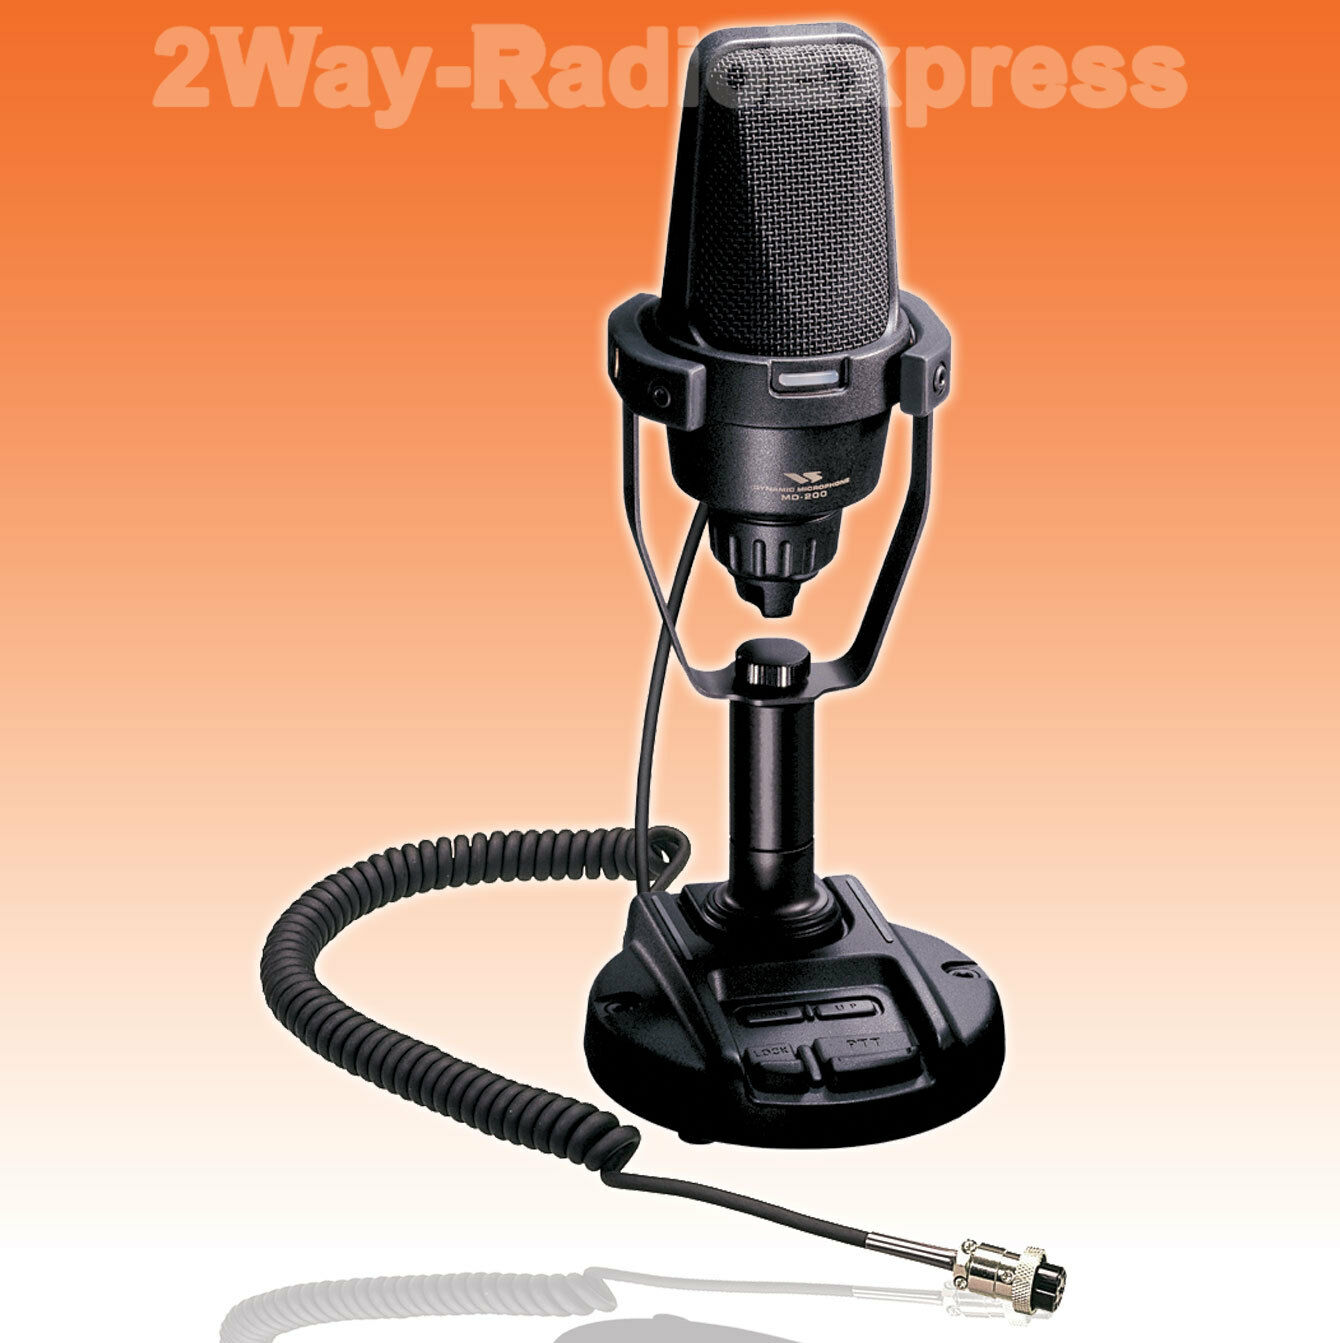 Yaesu Md 200 High Fidelity Desk Mic For All Latest Hf Radios Condenser Microphone Schematic The Mh31 1 Of 1only 4 Available